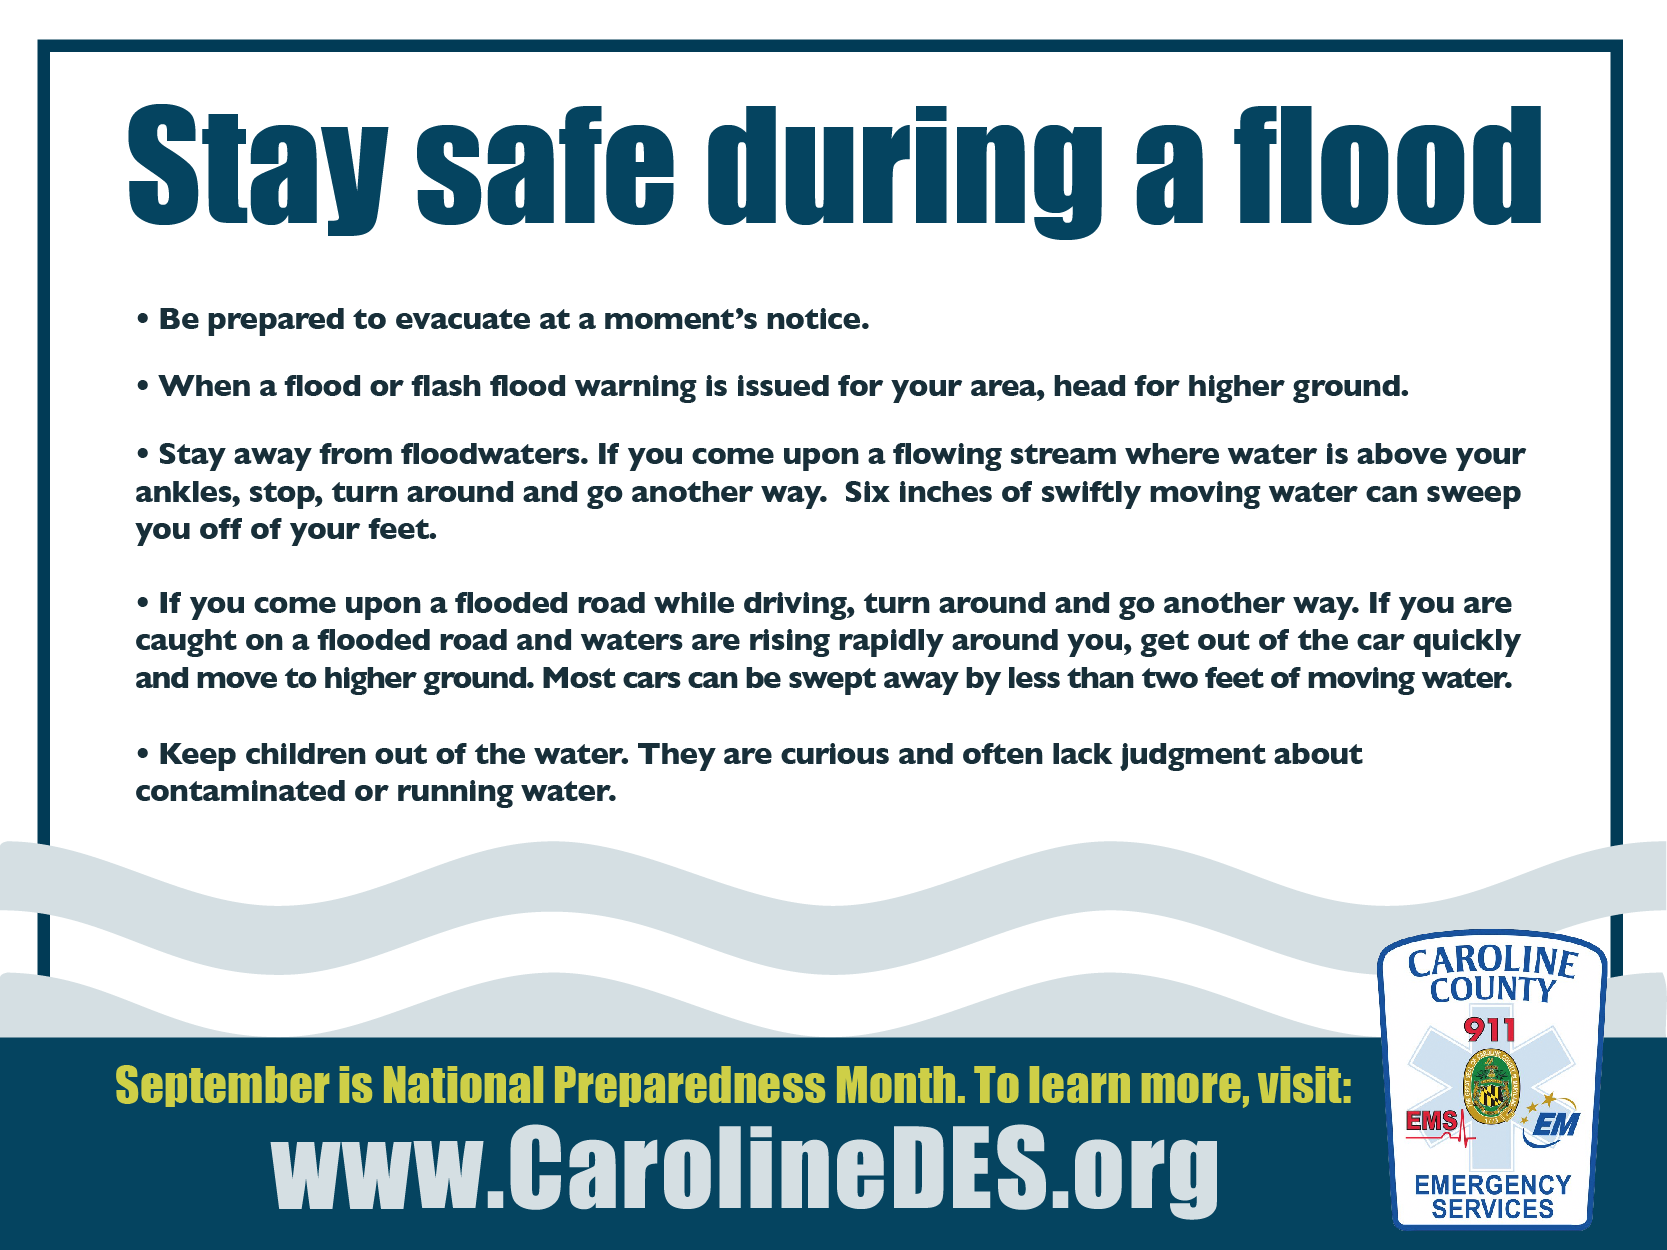 National Preparedness Month Posts - Stay Safe During Flood